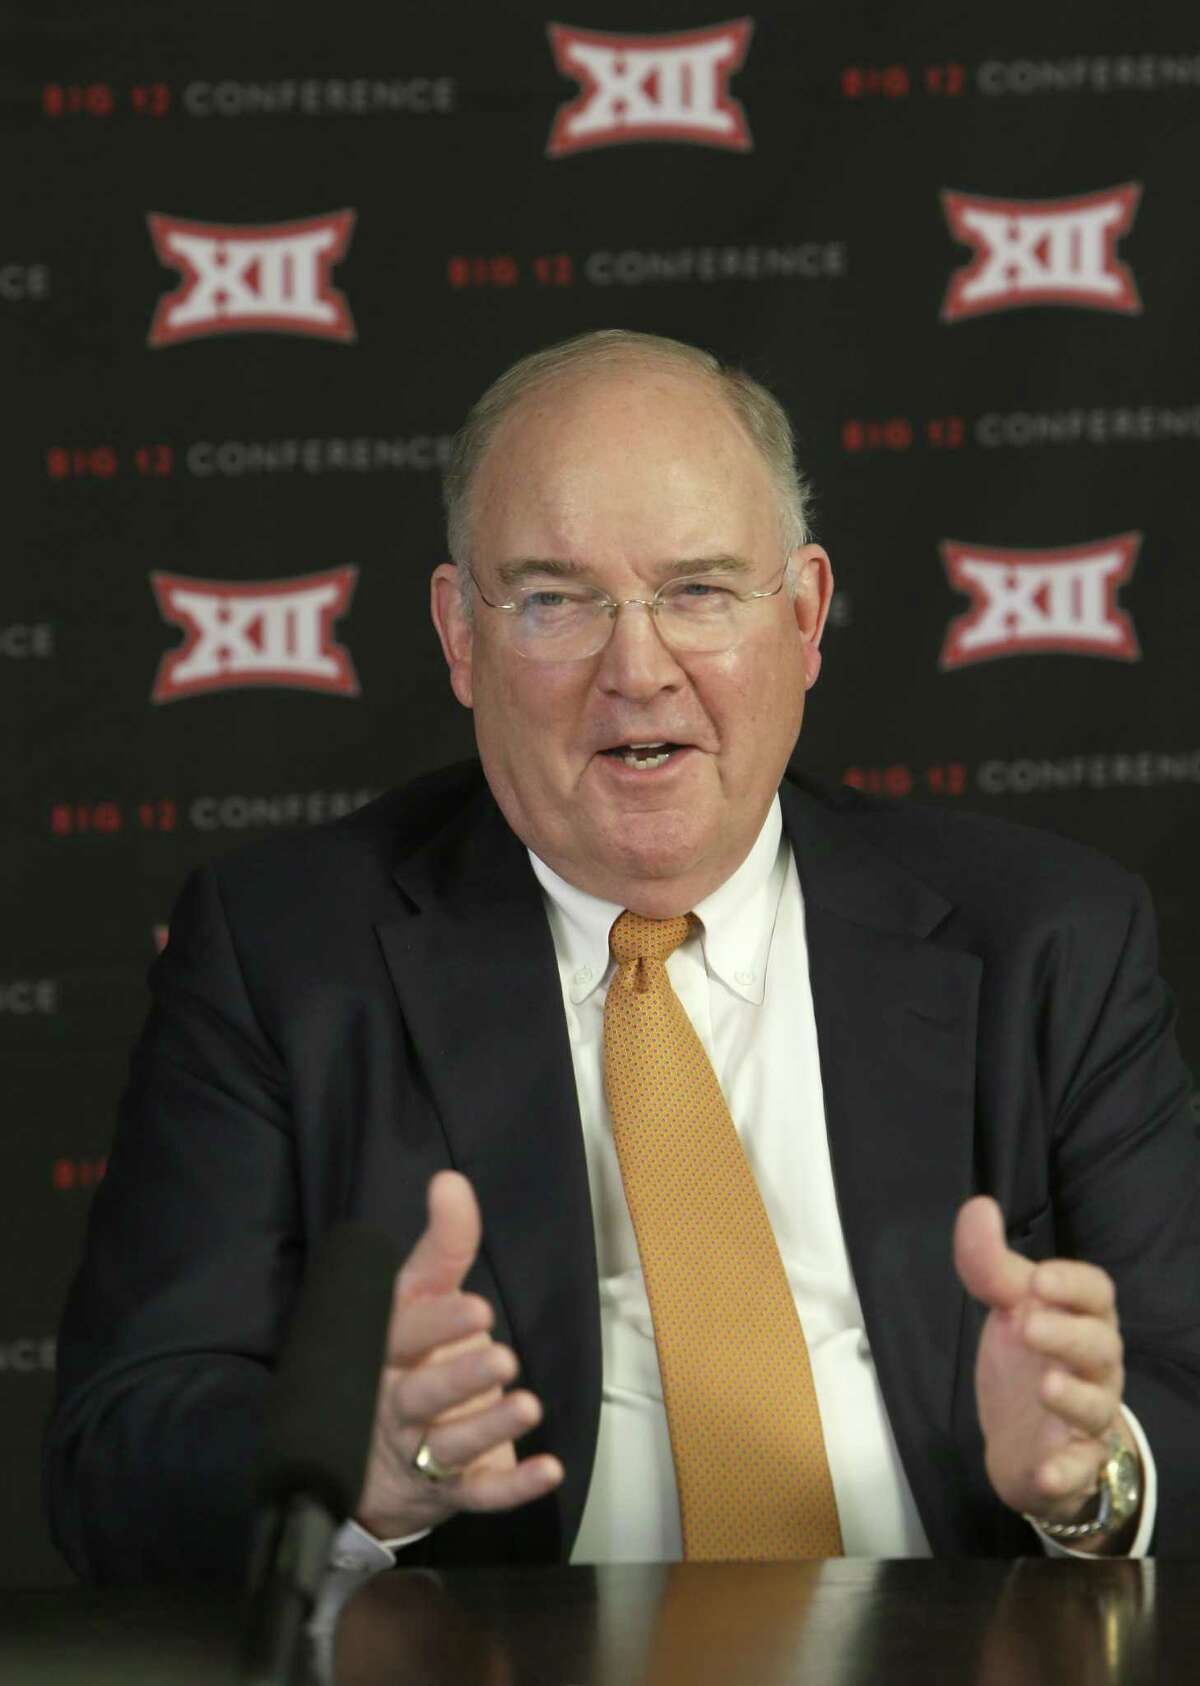 Texas athletic director Mike Perrin speaks to reporters after the Big 12 Conference meetings on Feb. 4, 2016, in Irving.